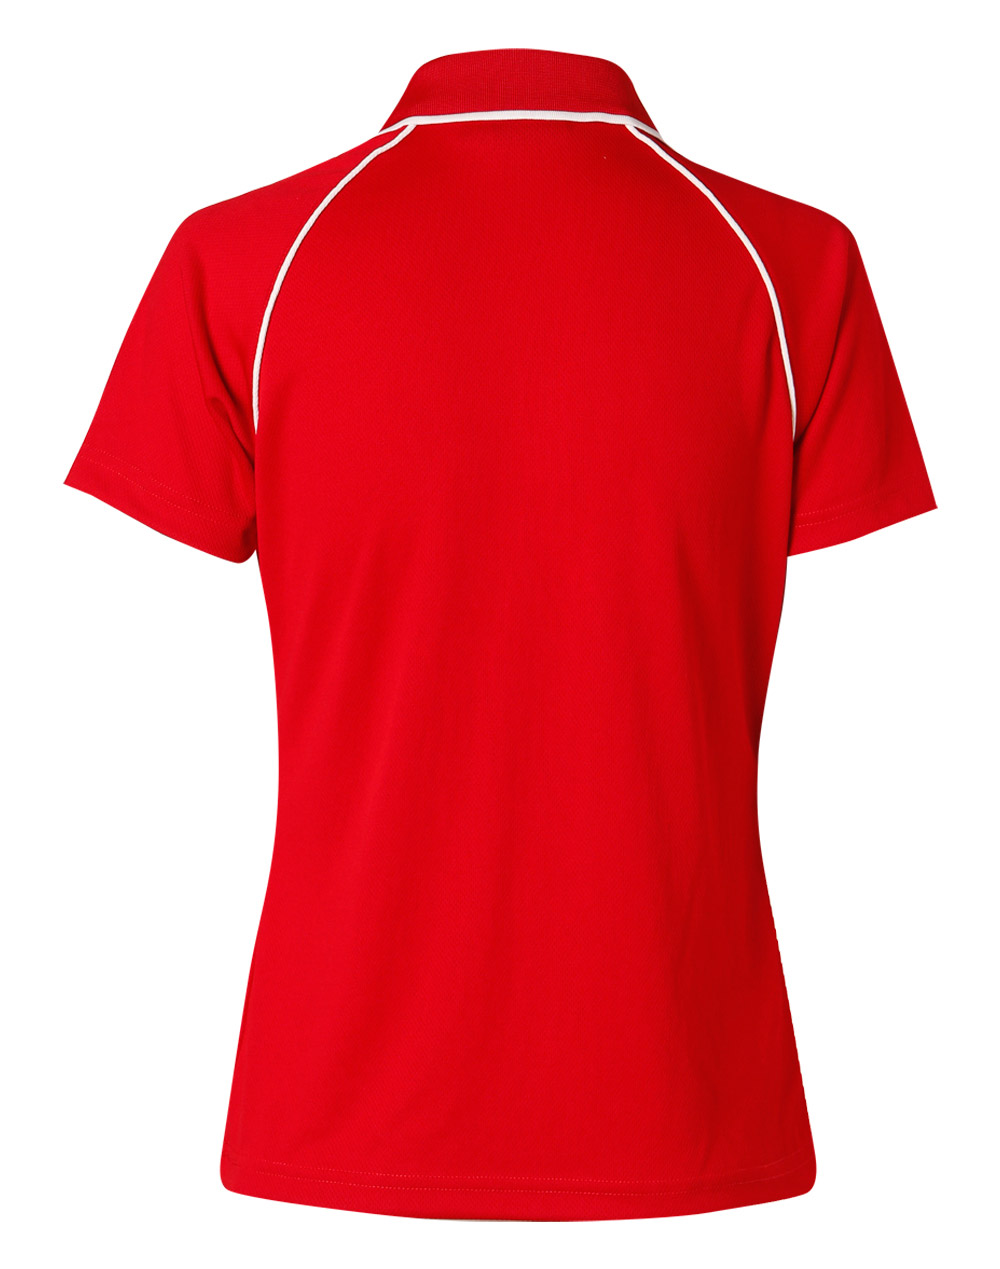 https://s3-ap-southeast-1.amazonaws.com/ws-imgs/POLOSHIRTS/PS19_Red.White_back.jpg